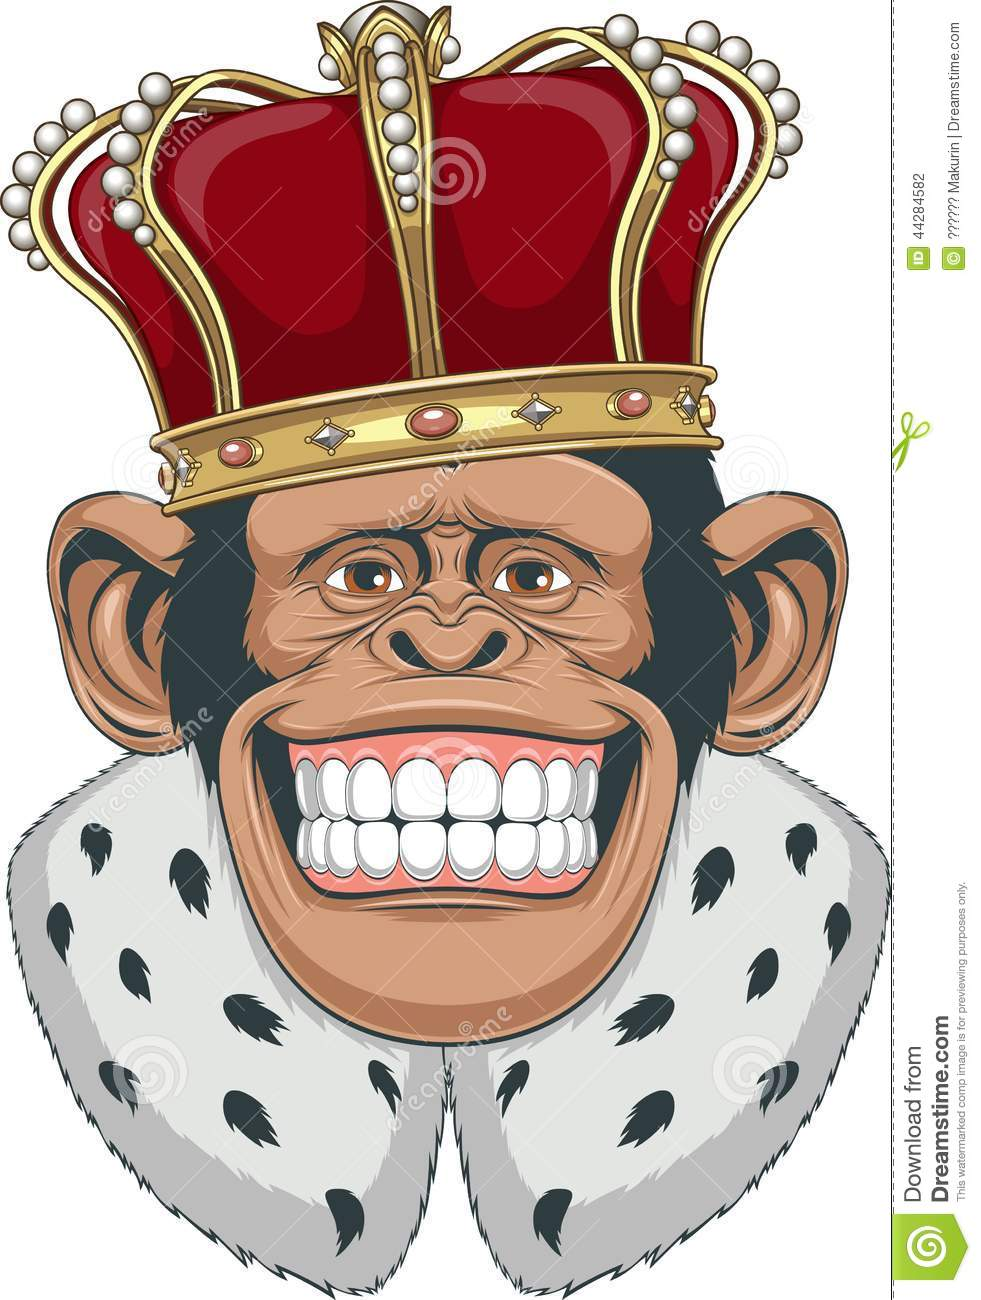 Vector illustration, formidable monkey in a crown.